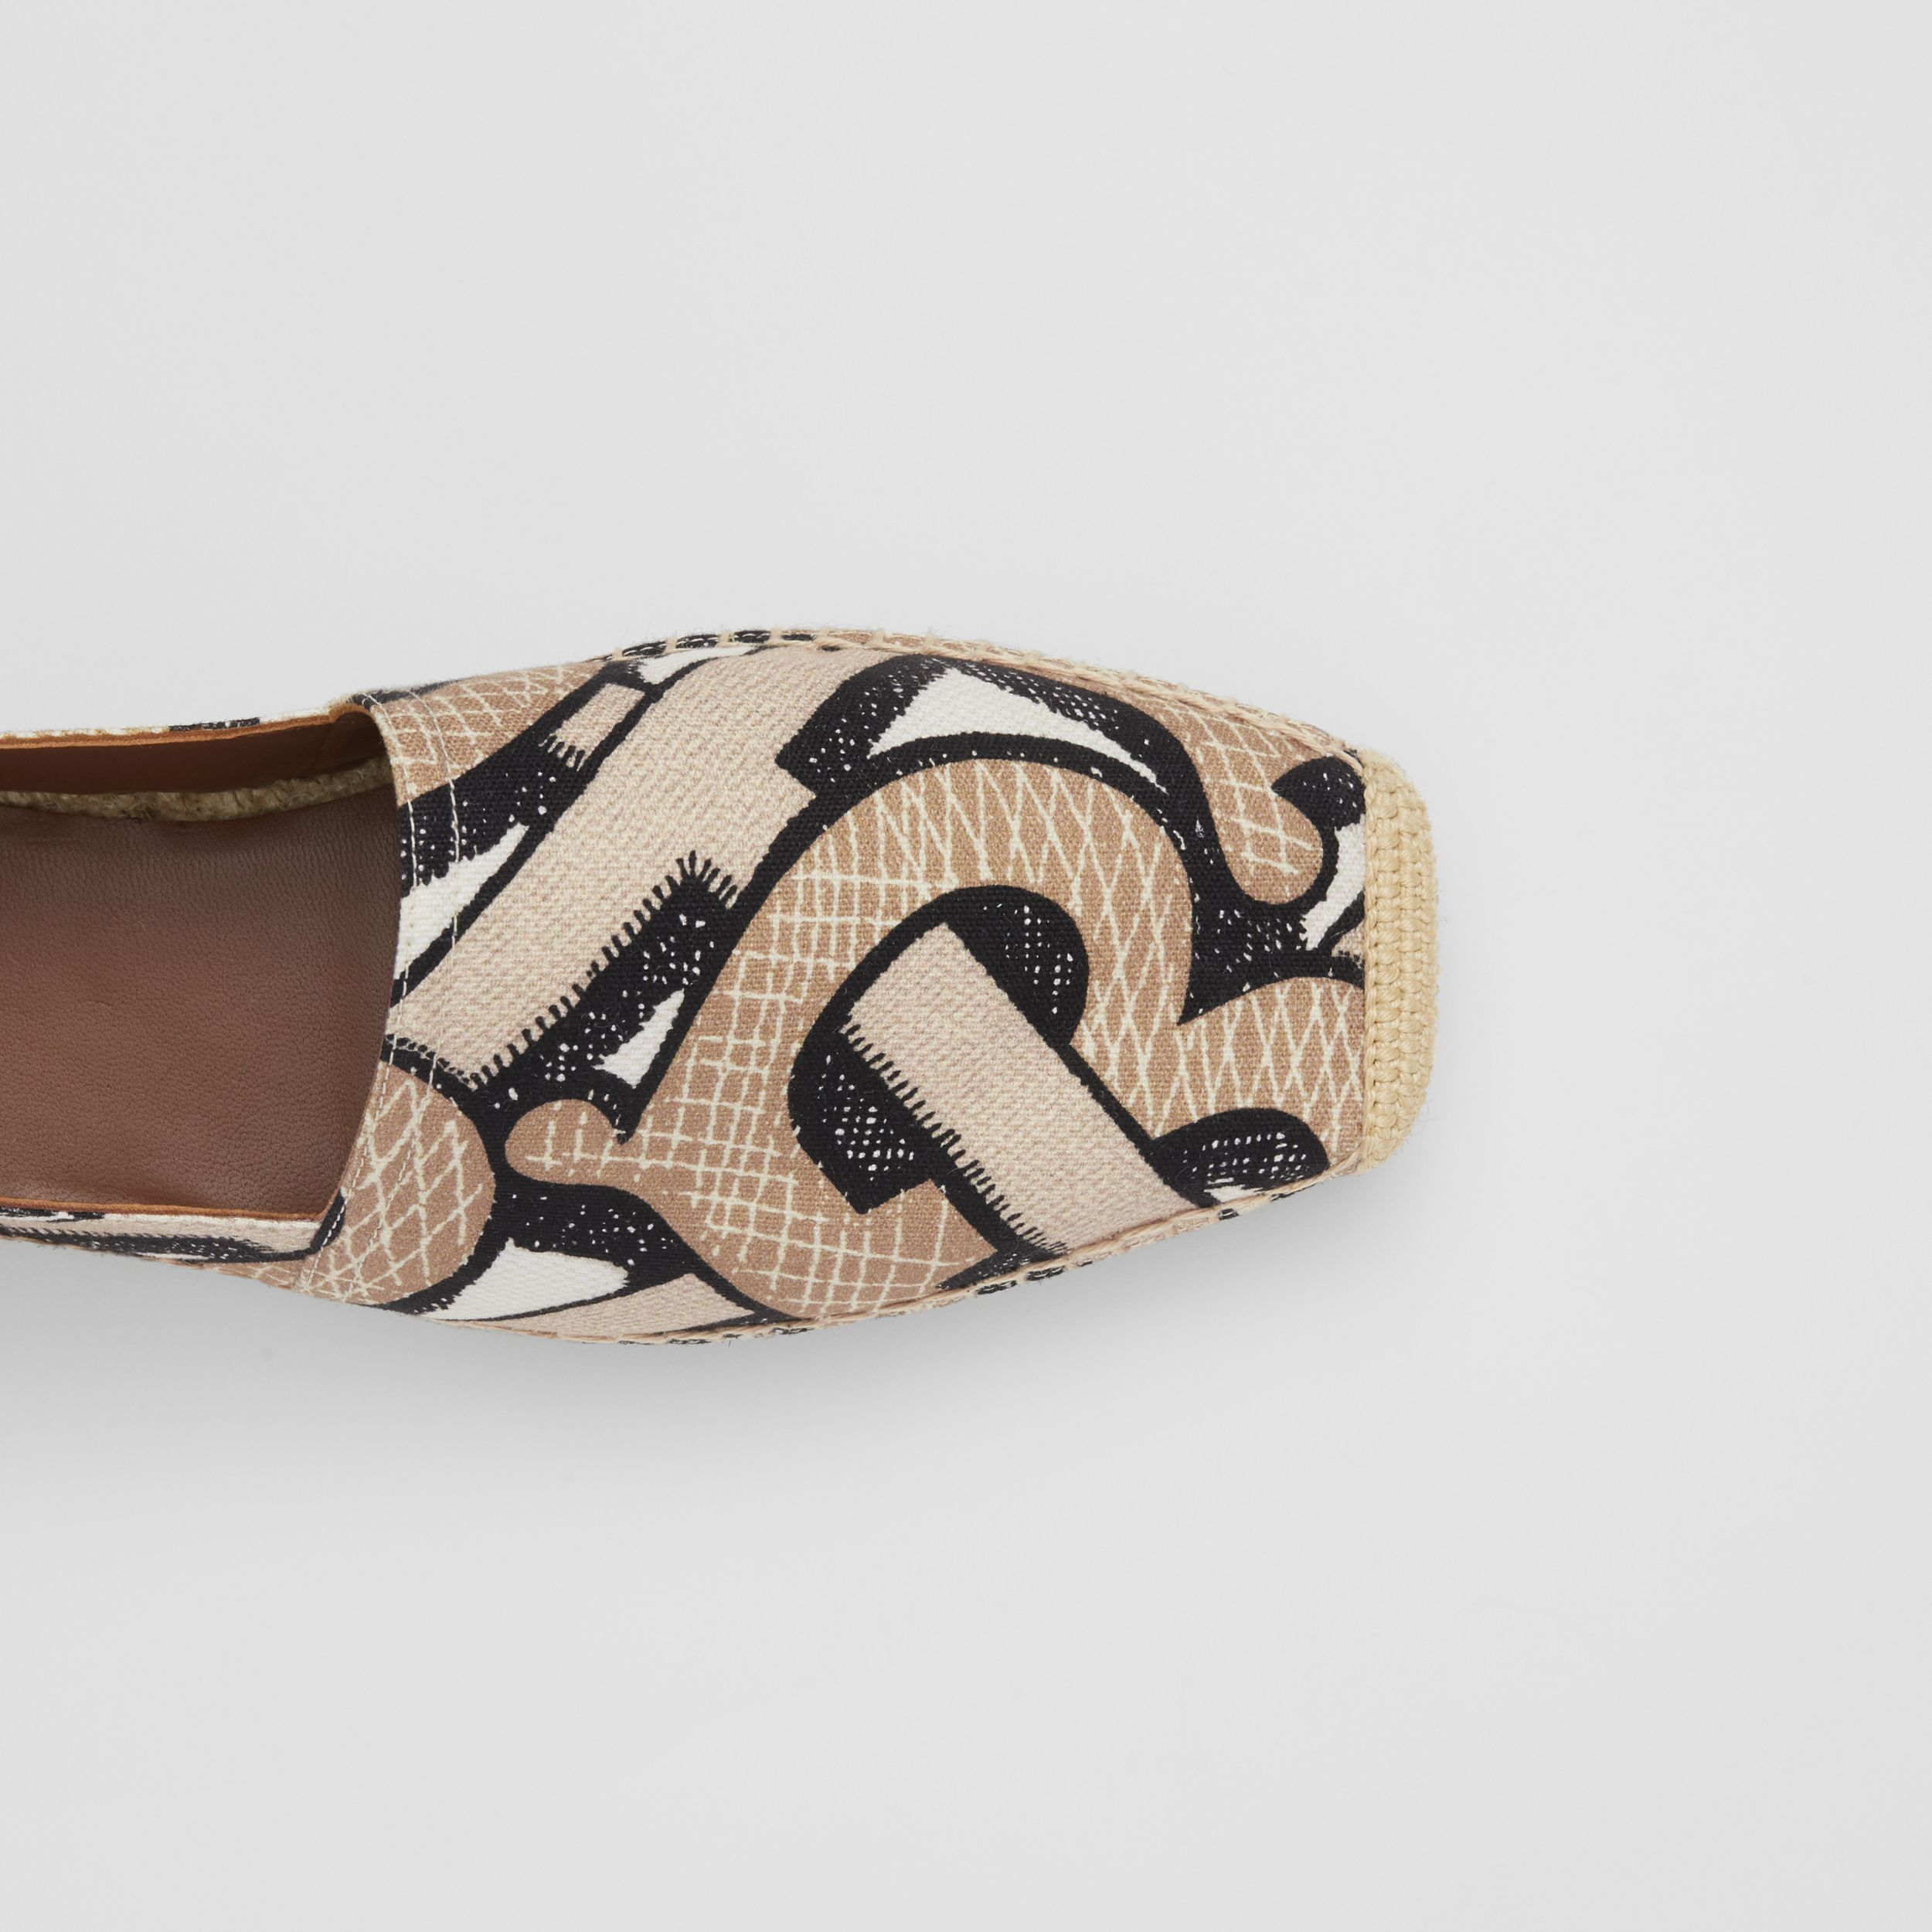 Monogram Print Cotton Canvas Espadrilles in Dark Beige - Women | Burberry - 2